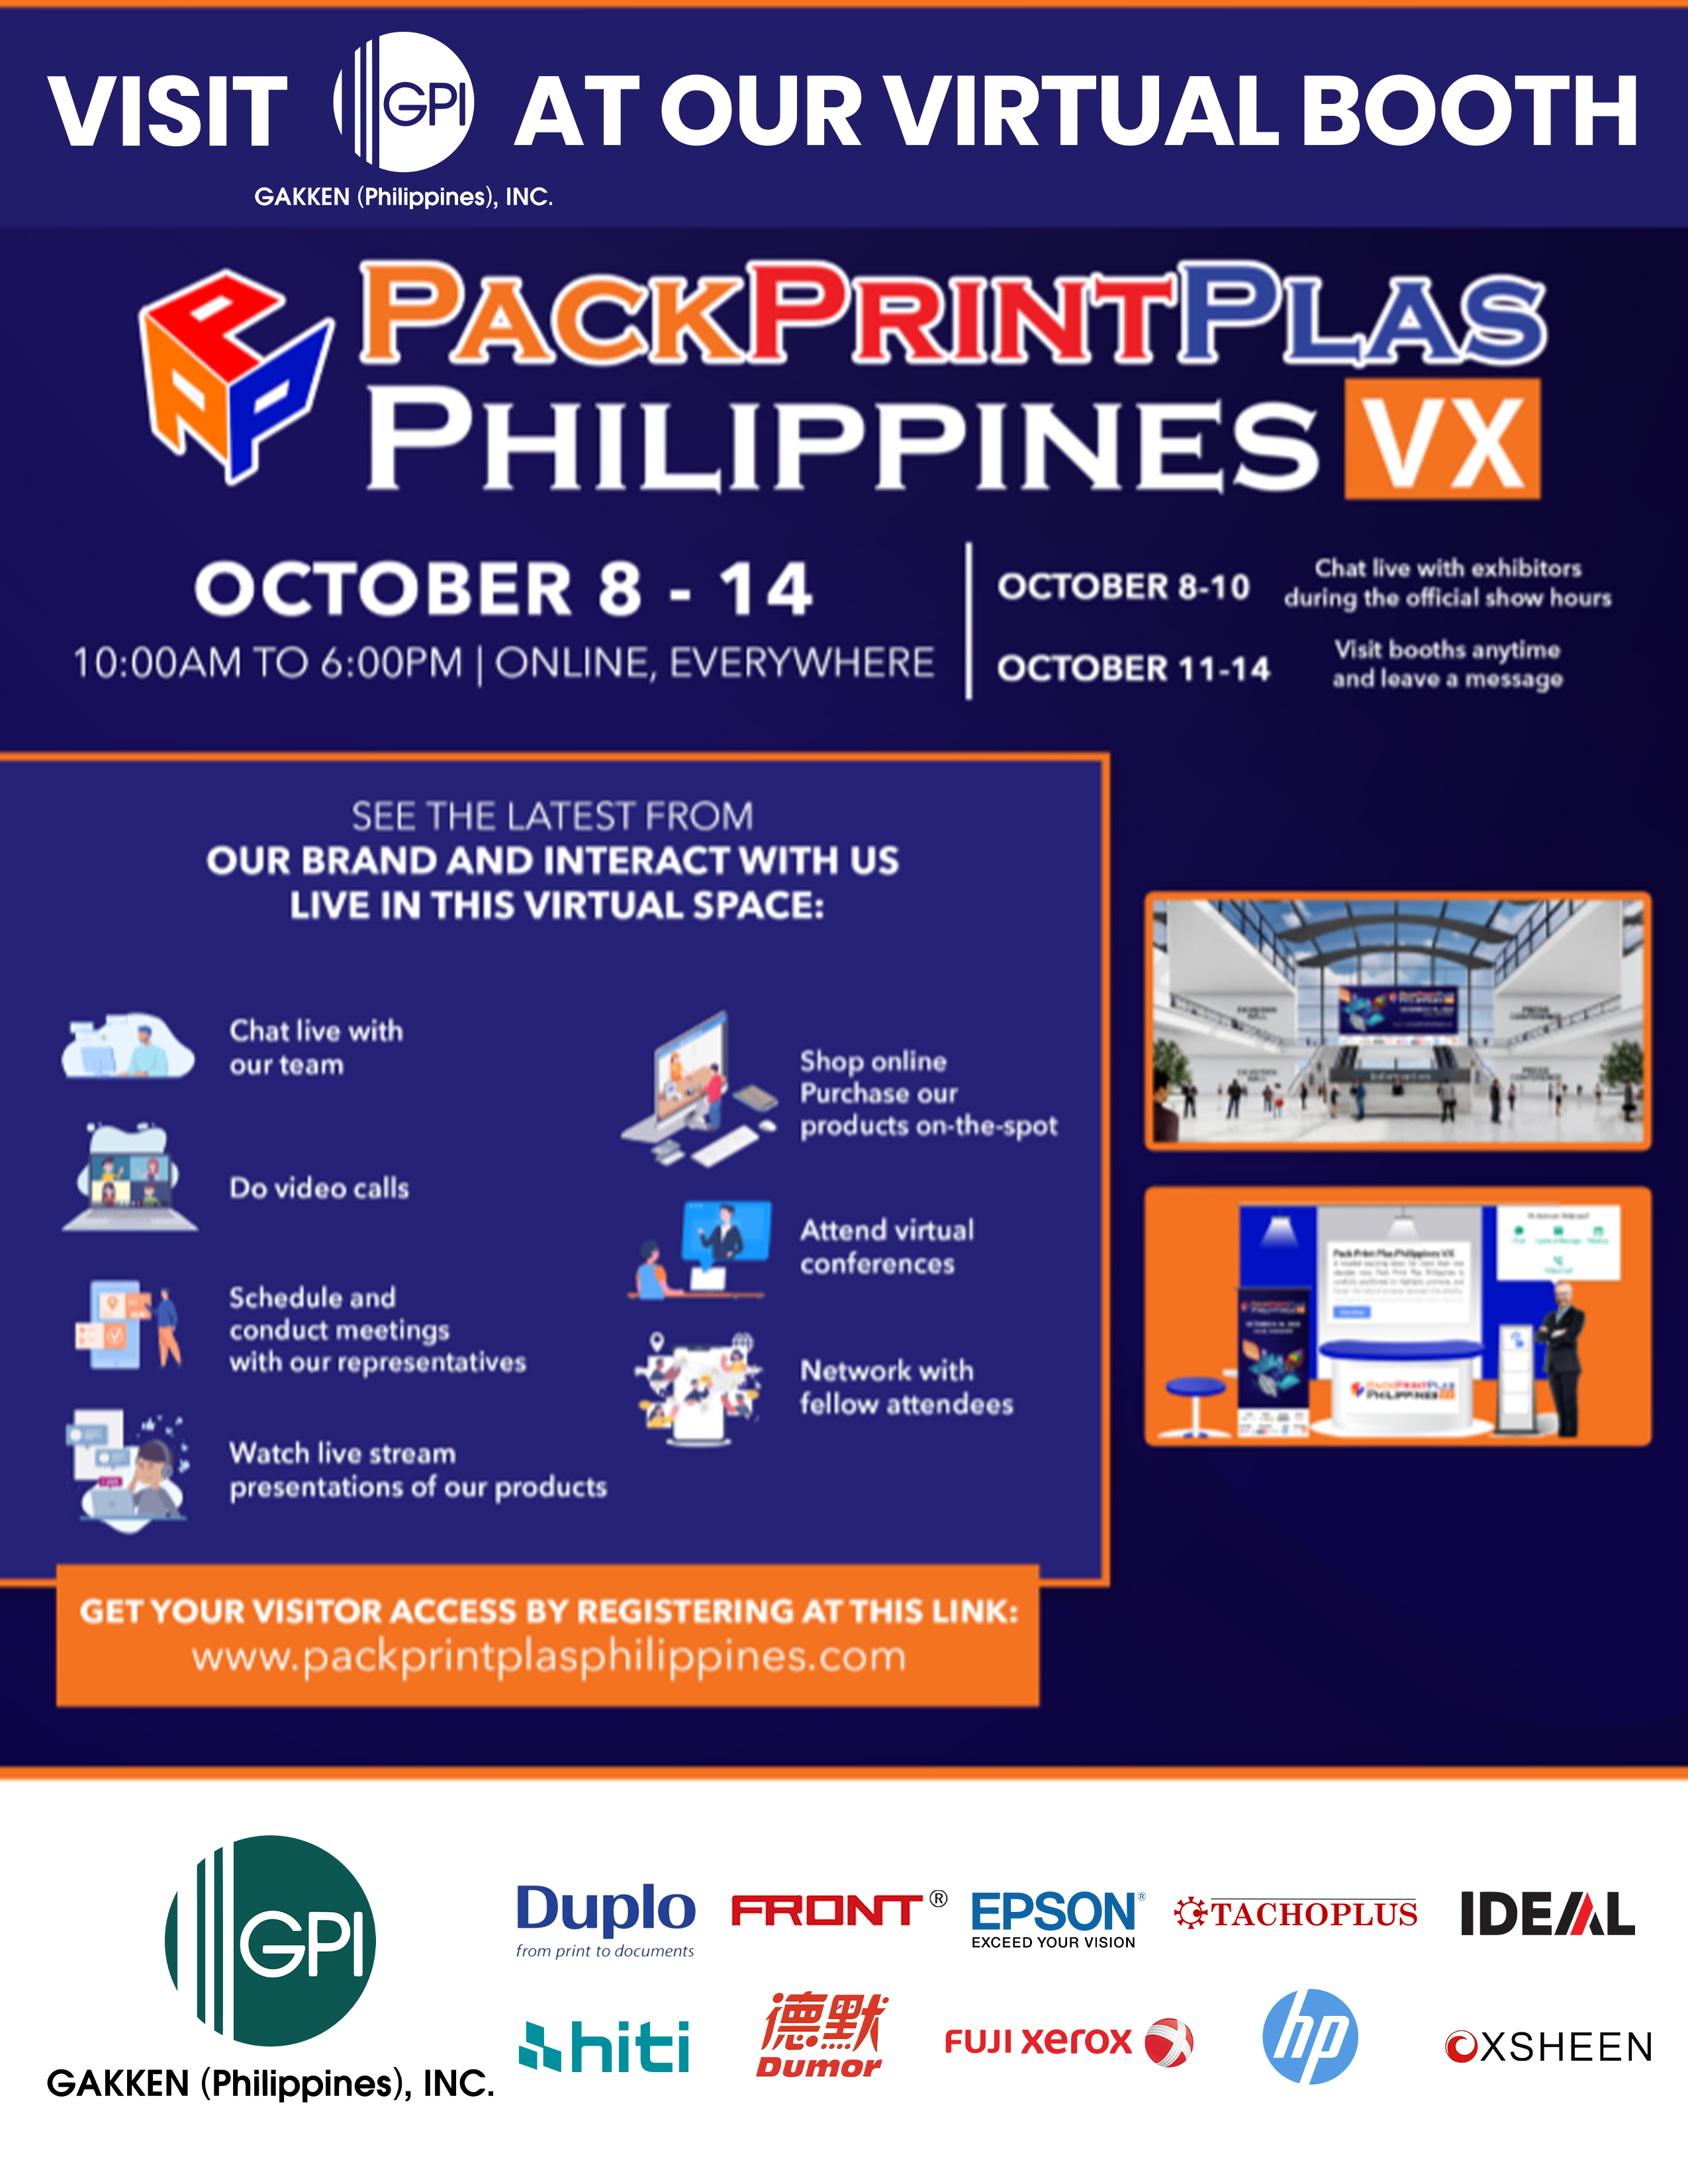 GPI Participates In Pack Print Plas Philippines VX 2020 – The First Ever Virtual Exhibit In The Country!